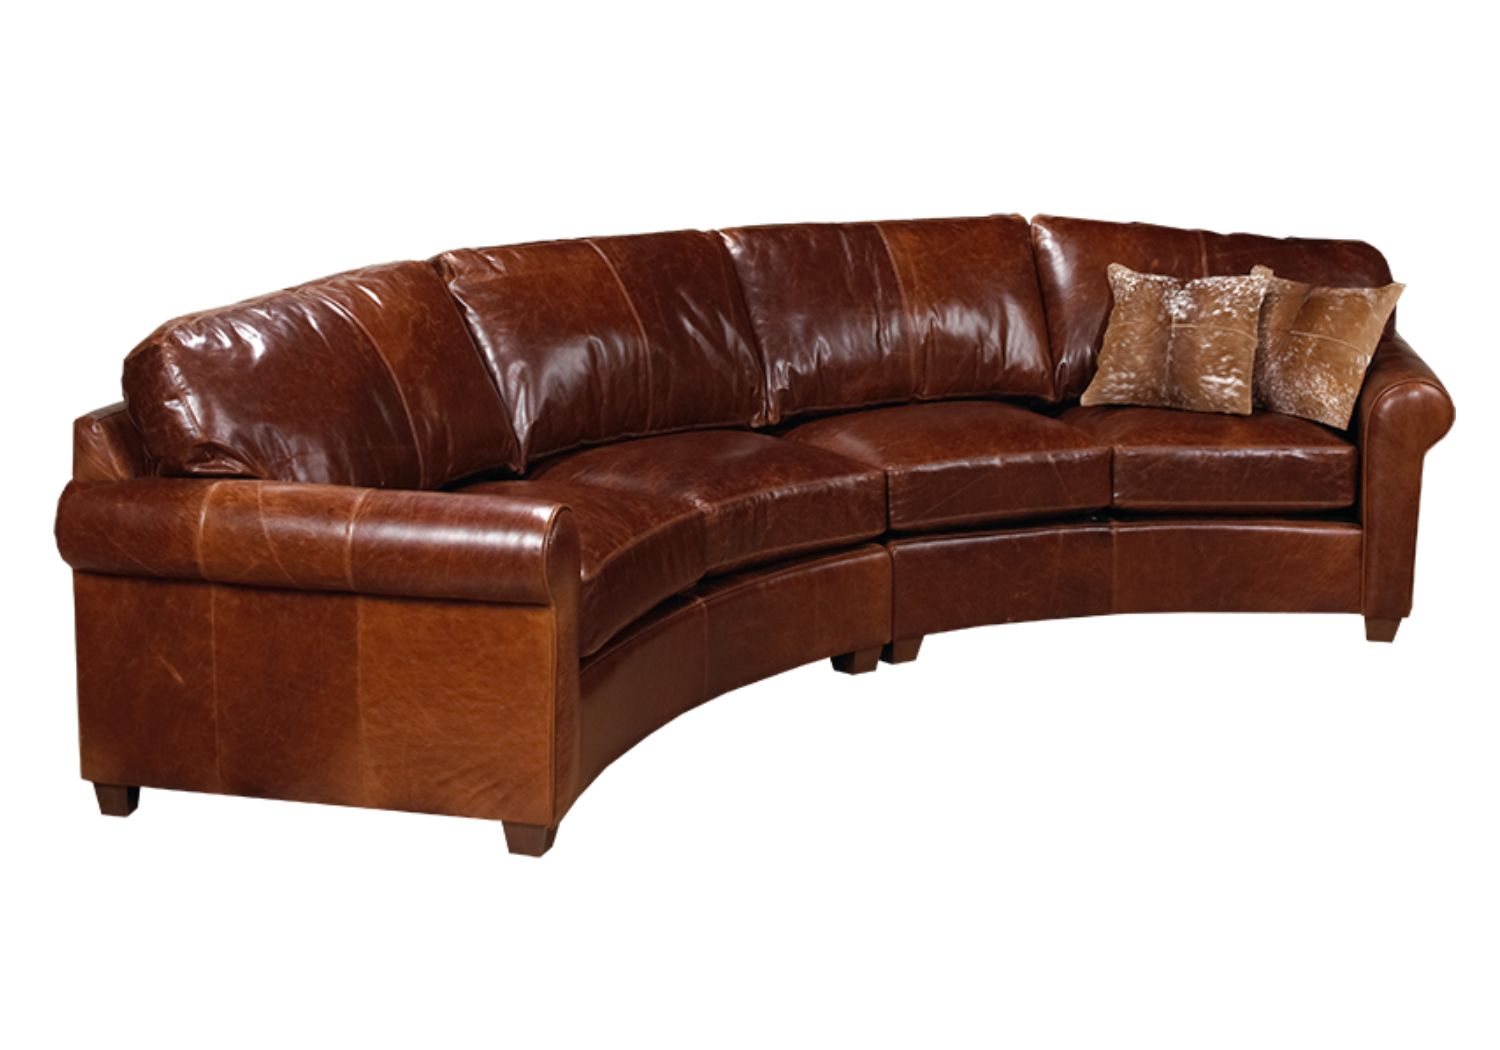 latest leather sectional sofa with recliner gallery-Cool Leather Sectional sofa with Recliner Design